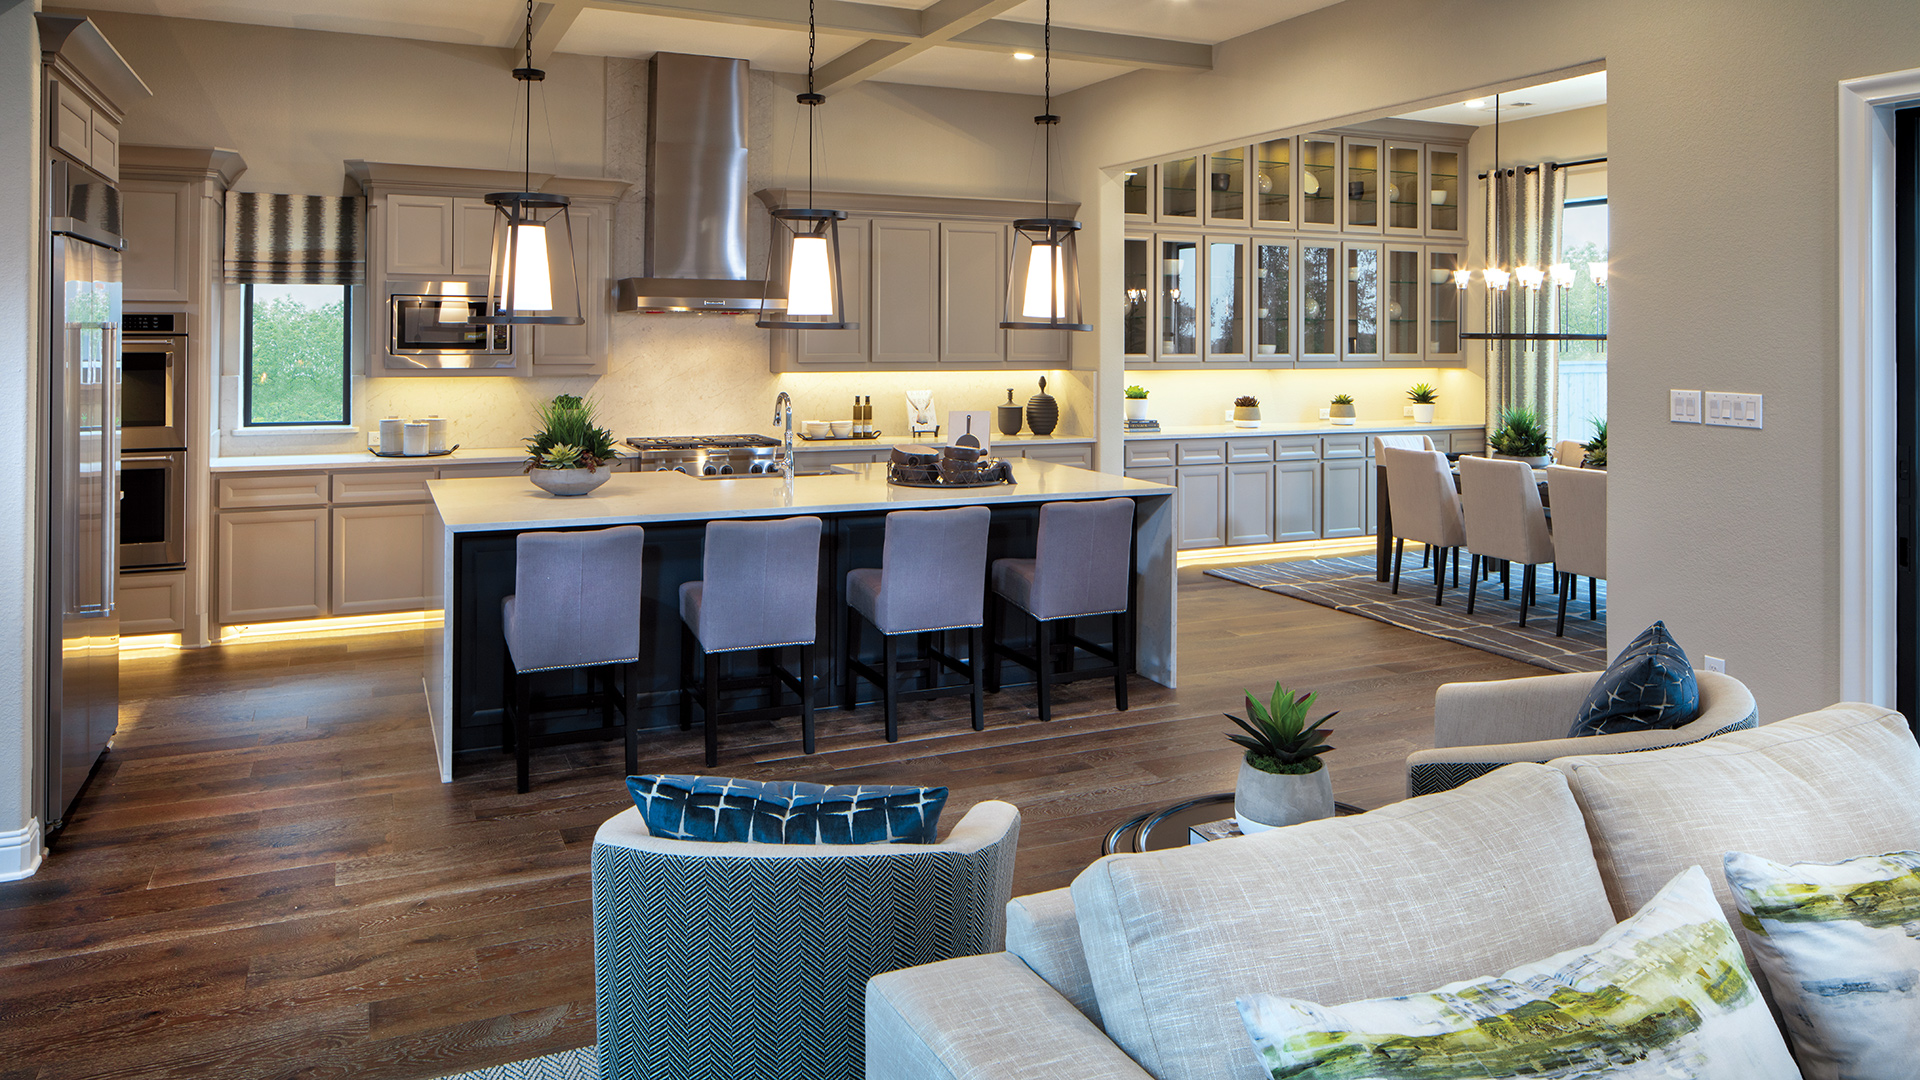 The well-appointed kitchen of the Valen model home